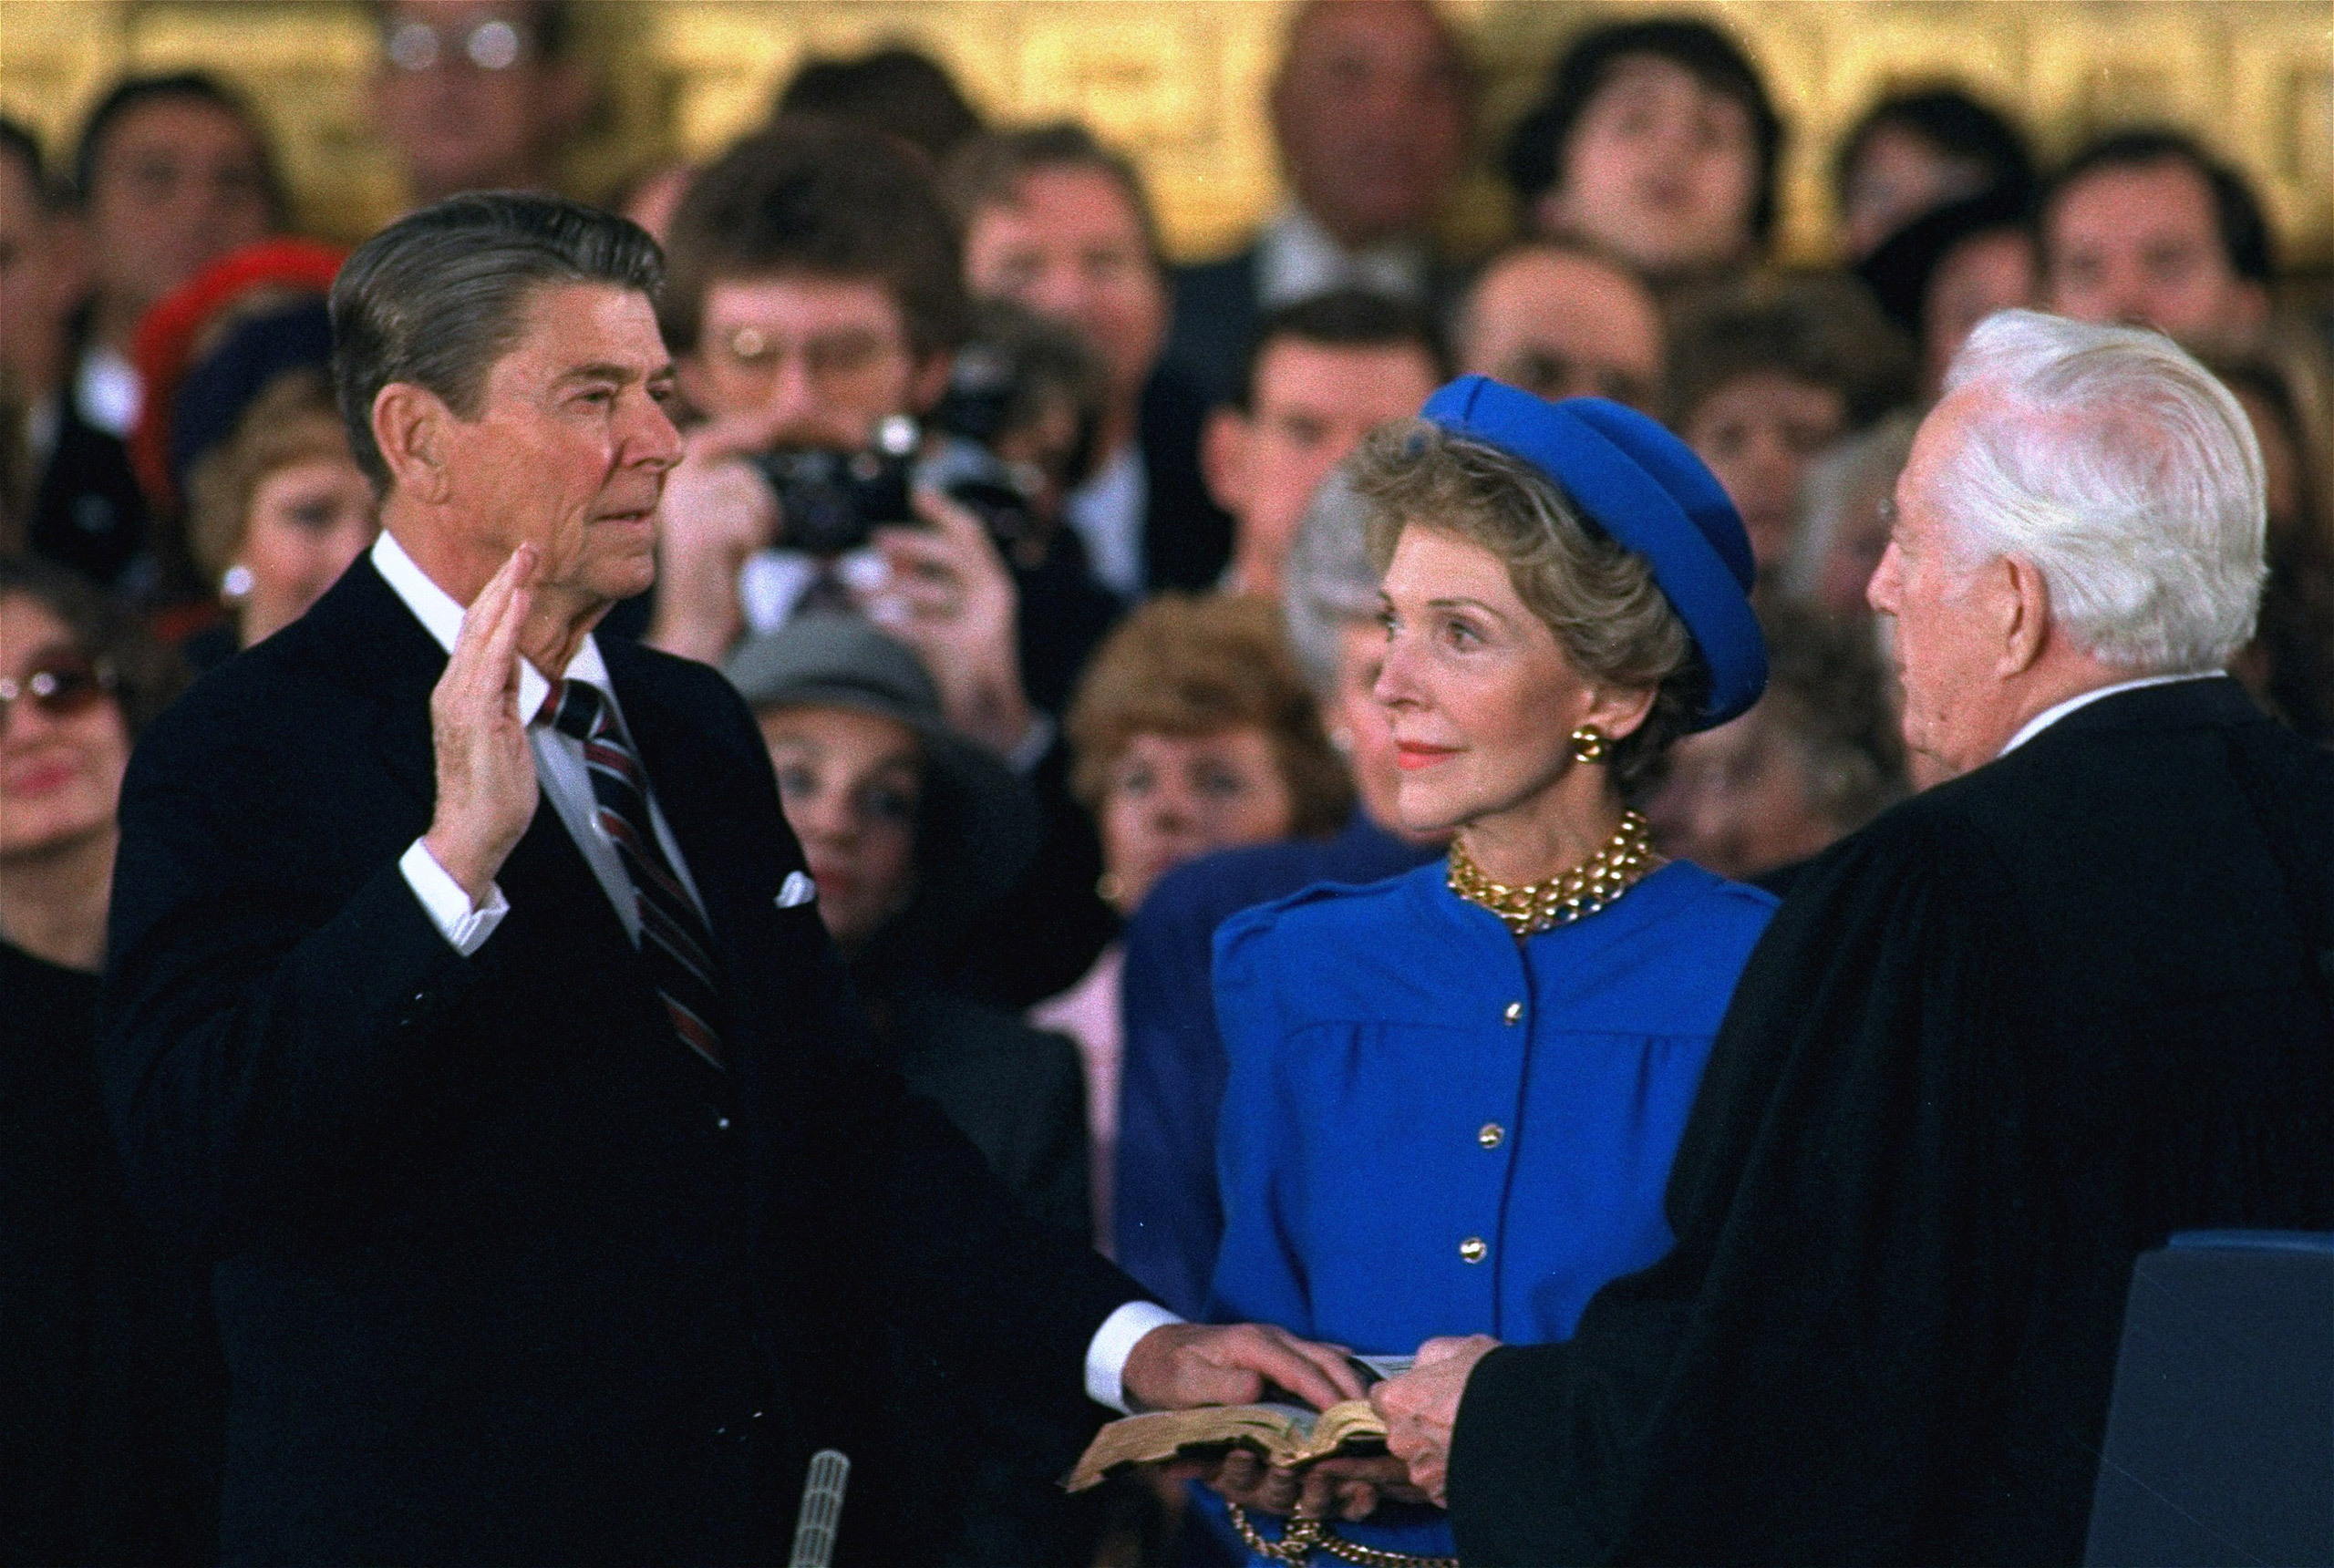 First Lady Nancy Reagan watches as President Ronald Reagan is sworn in during ceremonies in the Rotunda beneath the Capitol Dome in Washington, Jan. 21, 1985.